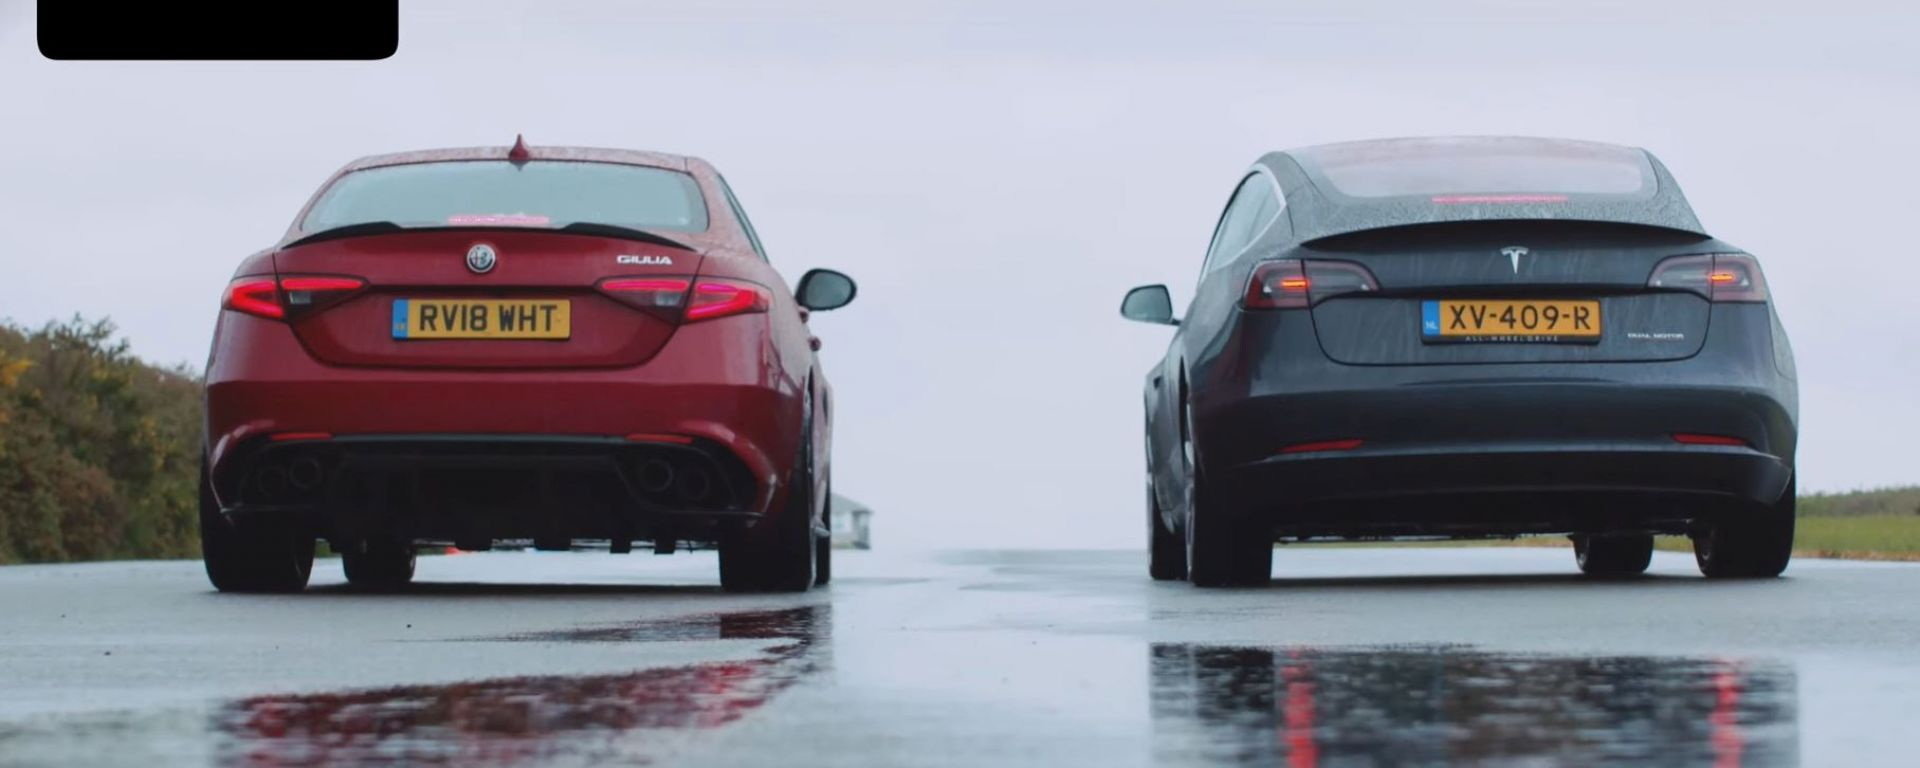 Tesla Model 3 vs Giulia Quadrifoglio drag race